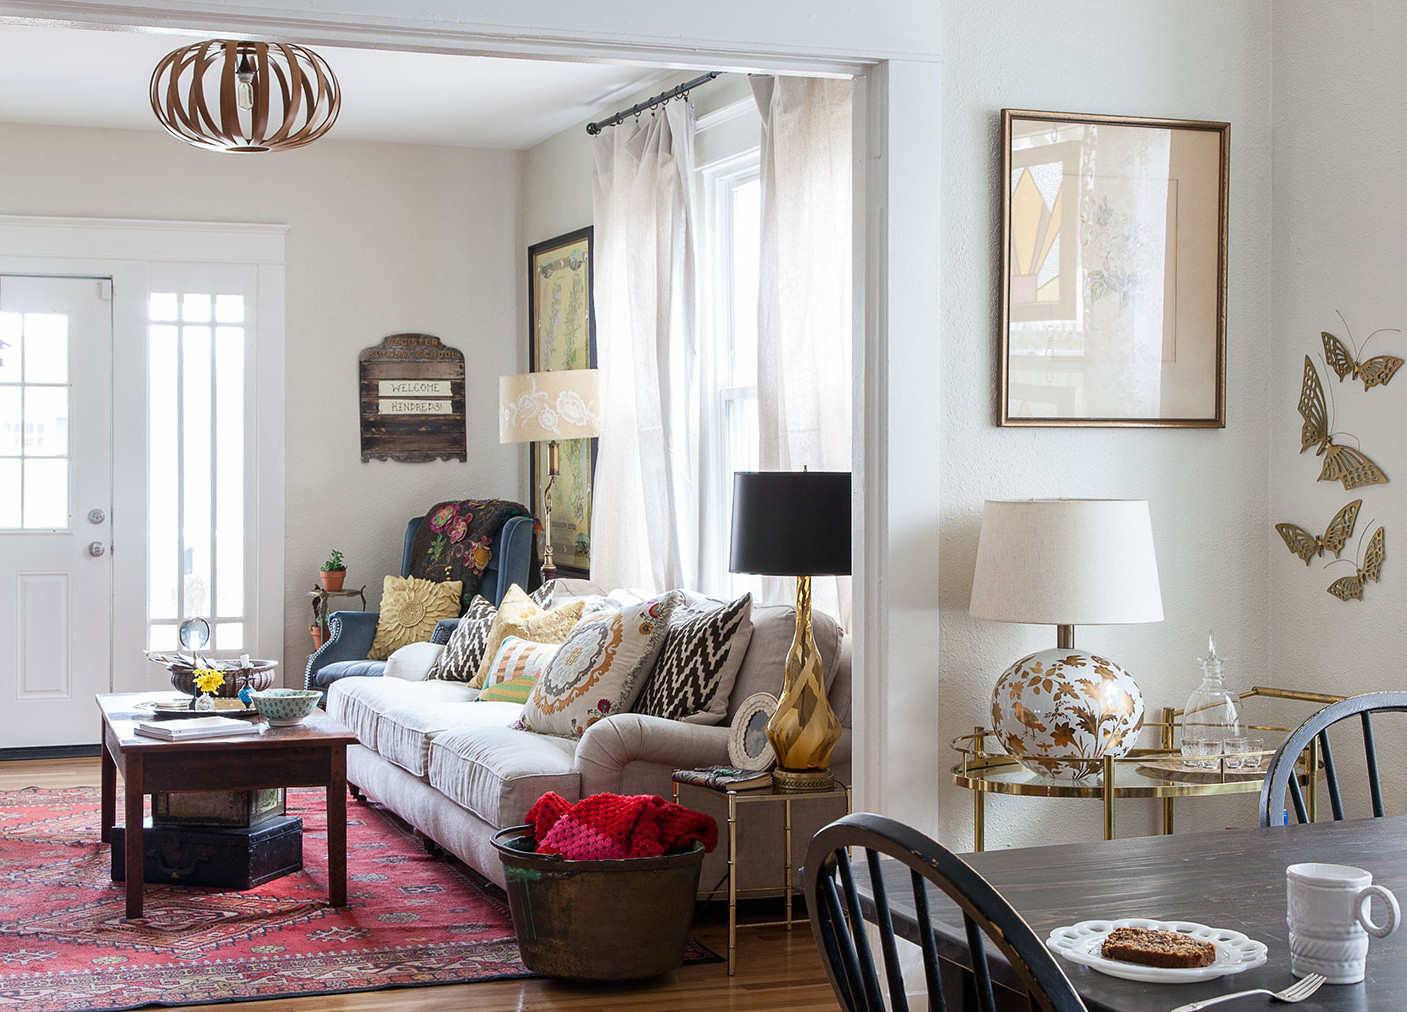 The Nashville, Tennessee, living room of Ruthie Lindsey features a spirited mix of family heirlooms and vintage finds.